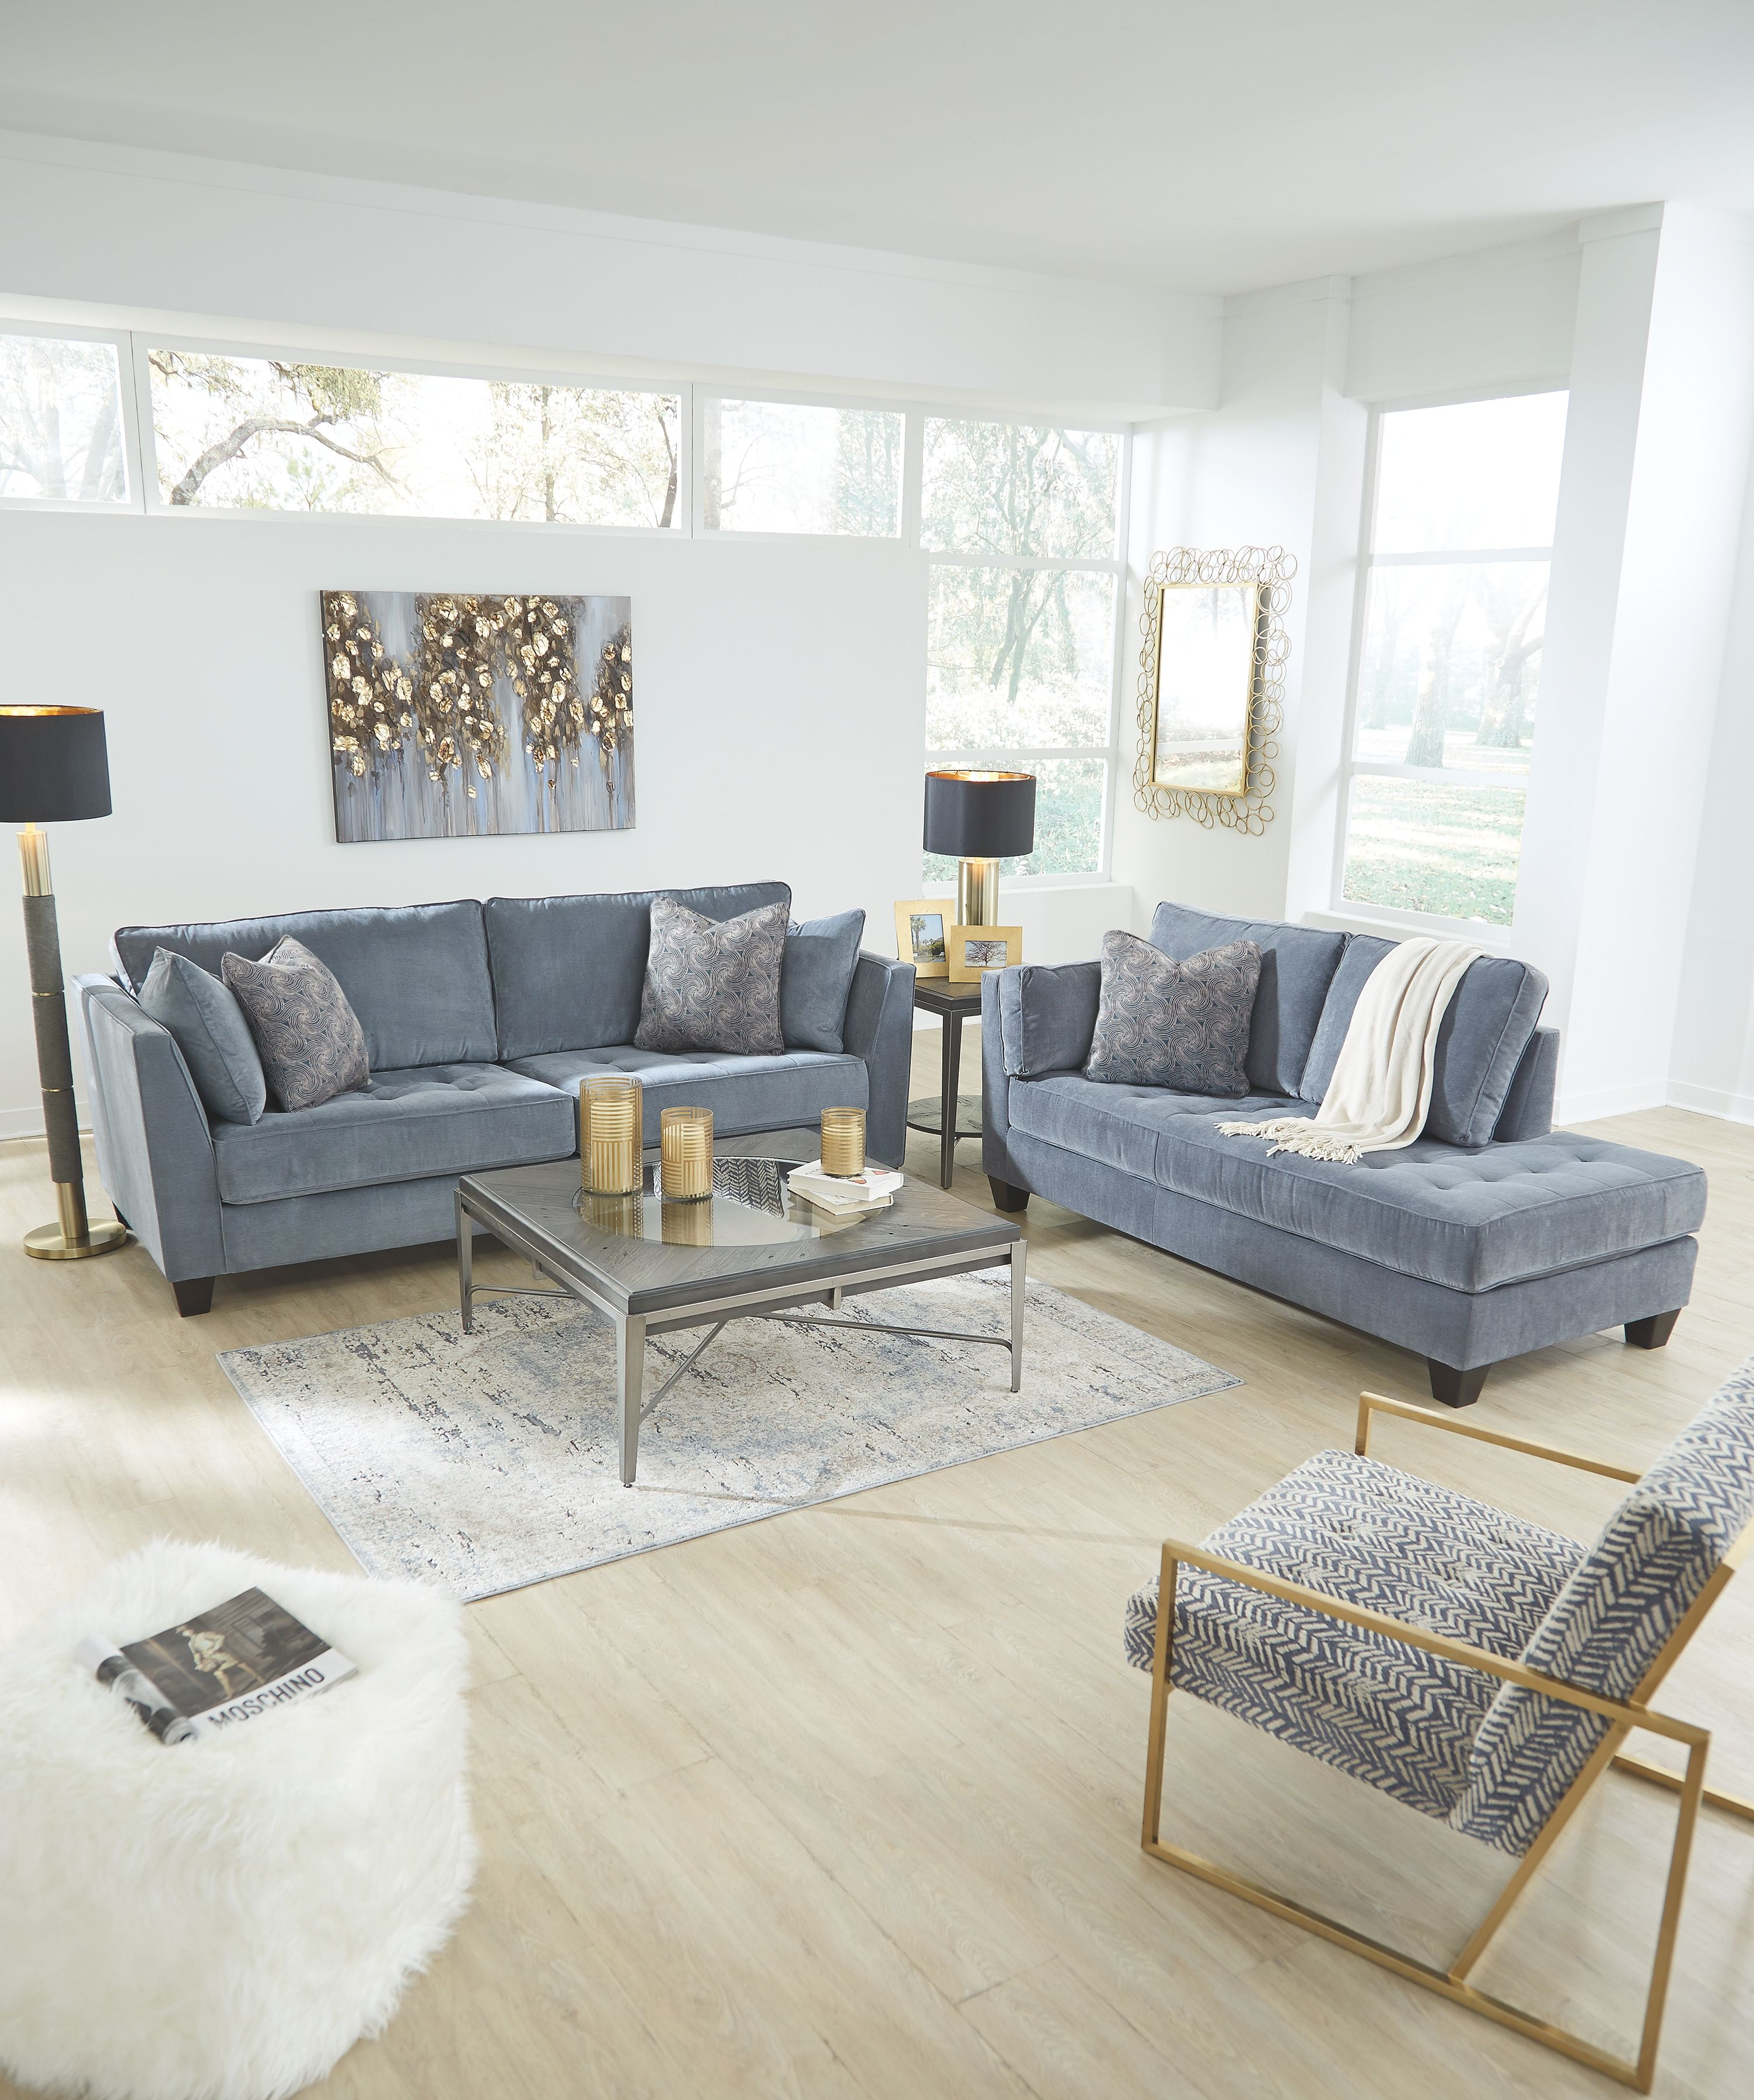 Sciolo Sofa, Cobalt | Products in 2019 | Living room decor ...